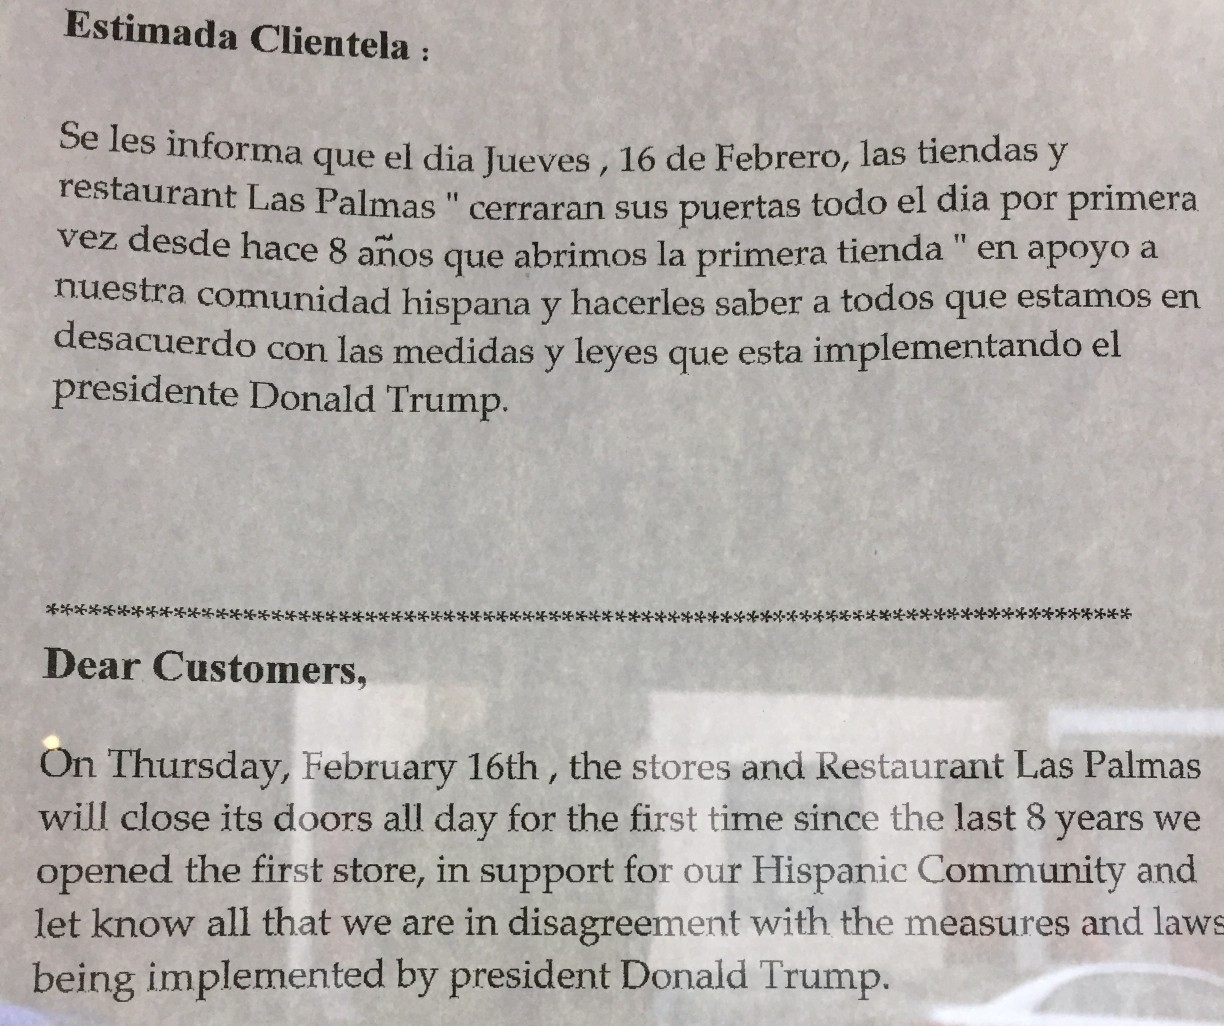 Las Palmas' Oakland store posted a message in both English and Spanish informing customers they would be closed Thursday. James Evan Bowen-Gaddy | Contributing Editor